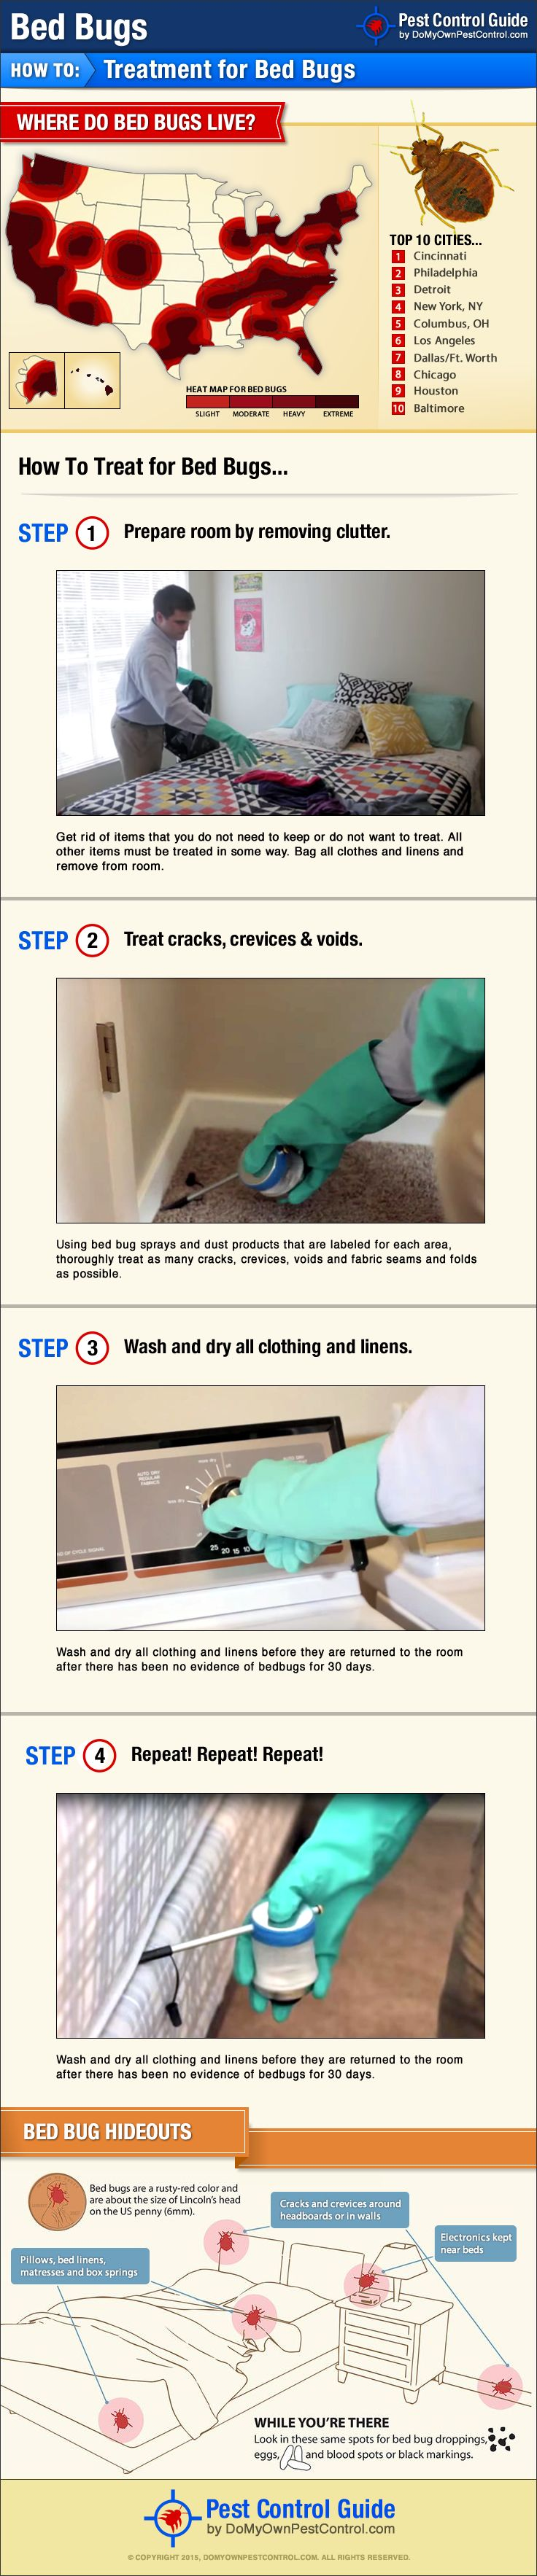 How To Get Rid of & Kill Bed Bugs Yourself - DIY Bed Bug Treatment